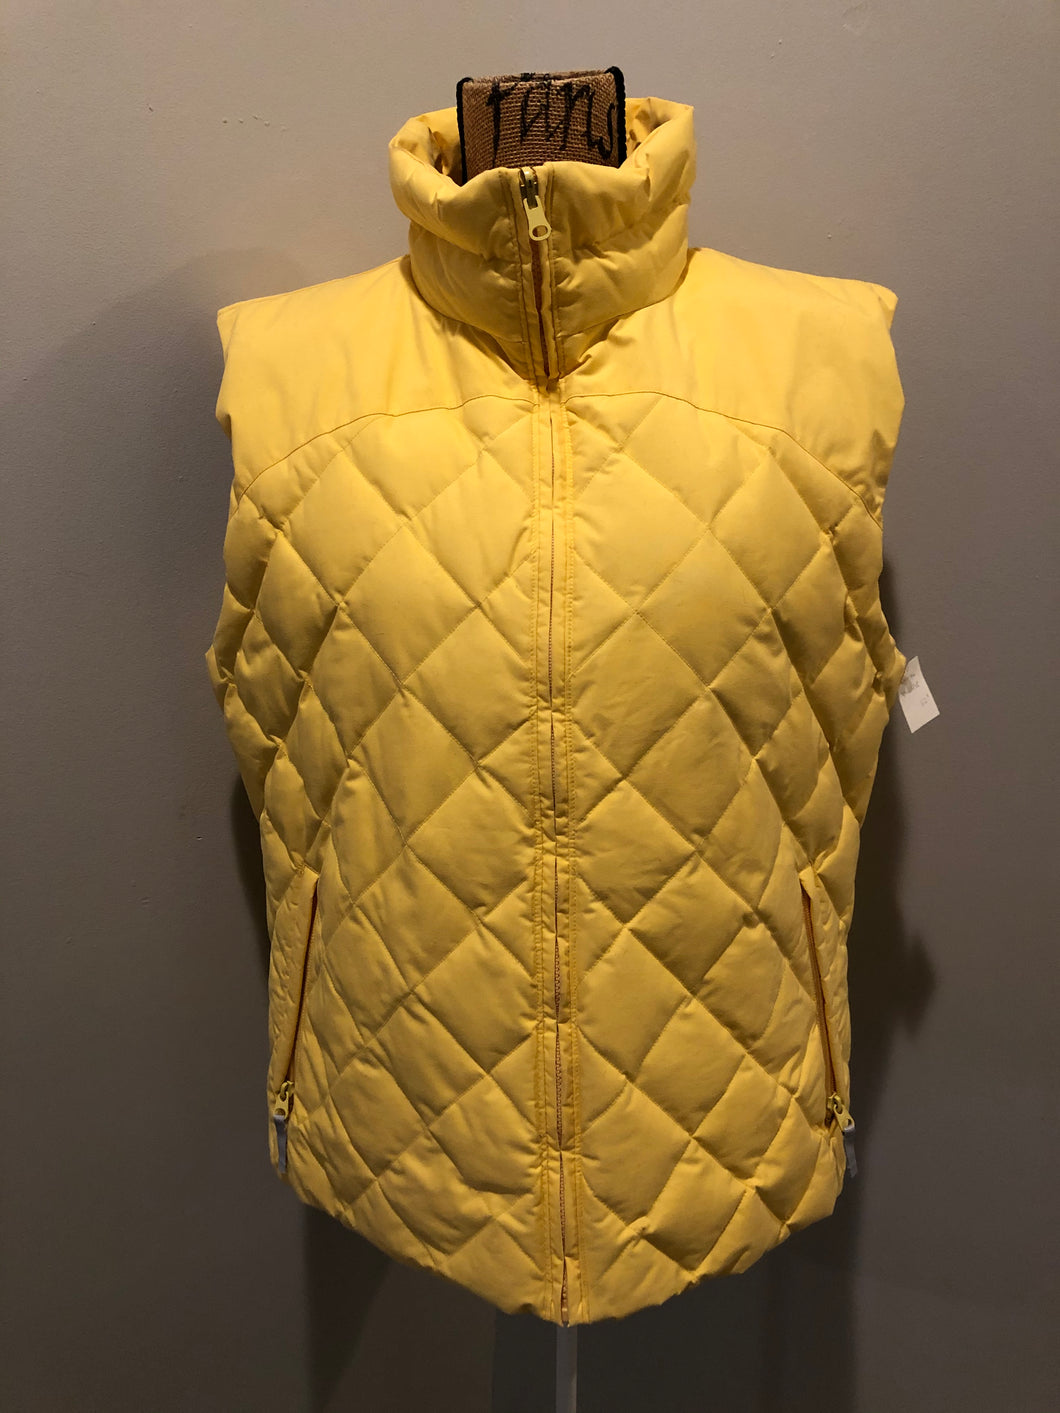 Kingspier Vintage - Scotch and Soda reversible orange and grey 1970's down filled puffer vest with snap closures and patch pockets. Made in Amsterdam.